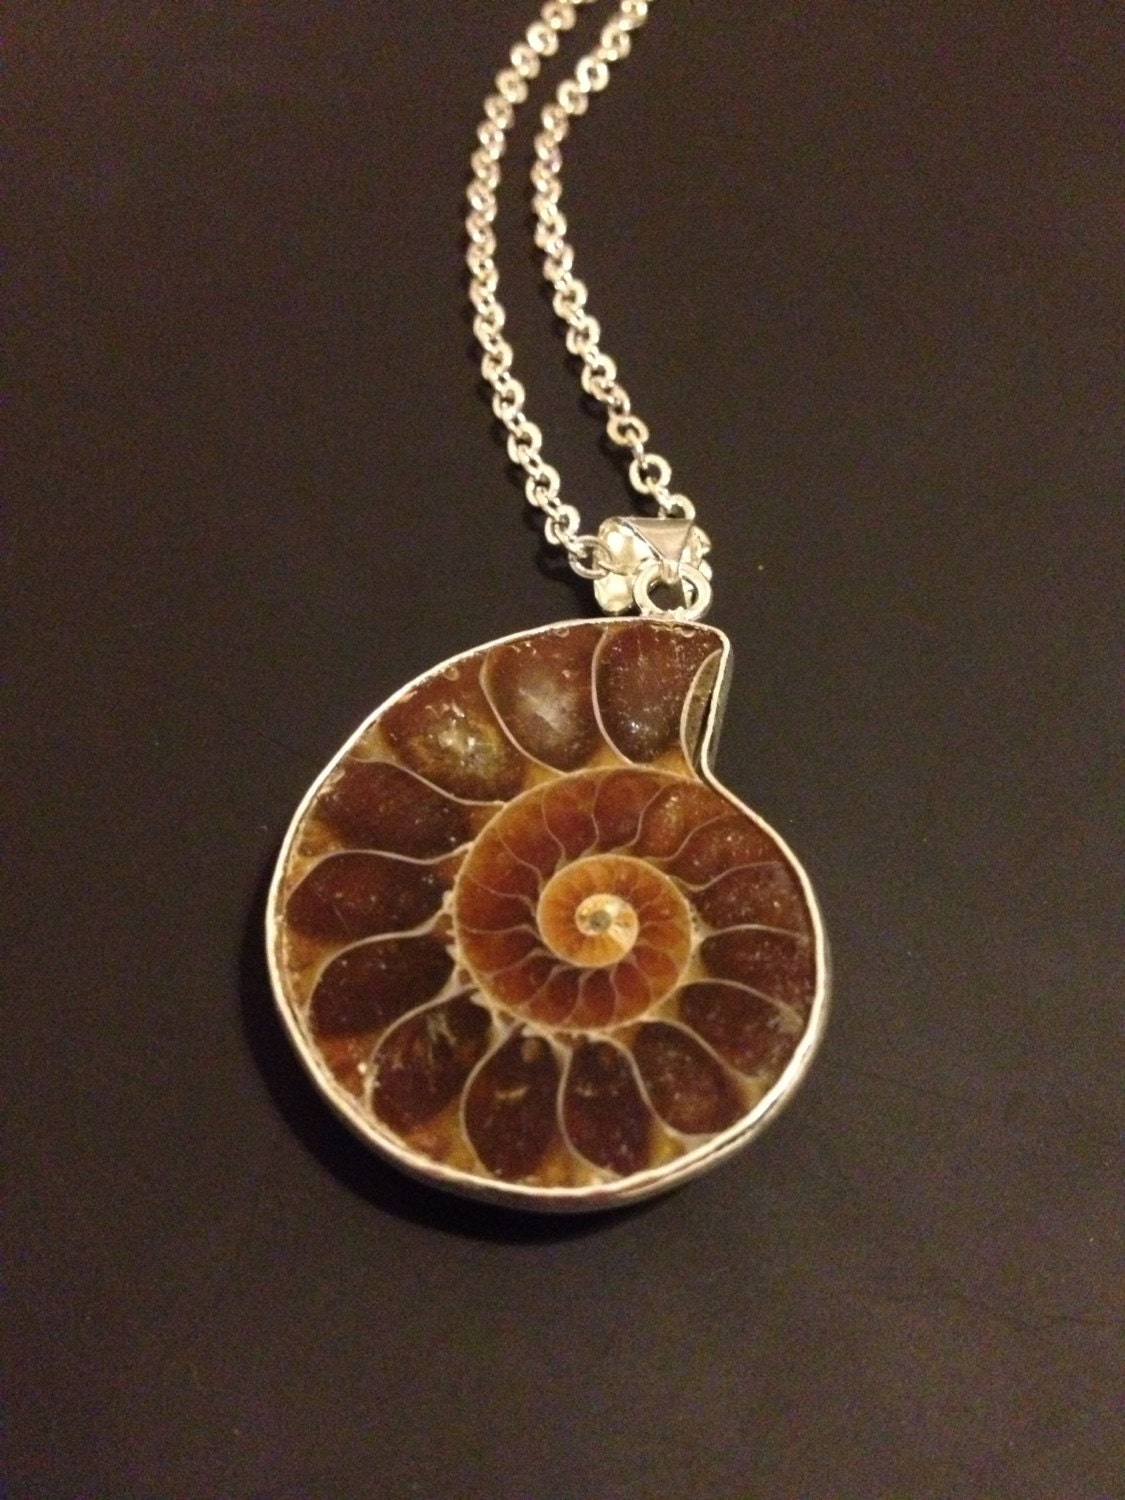 ammonite fossil pendant necklace by nightmarianne